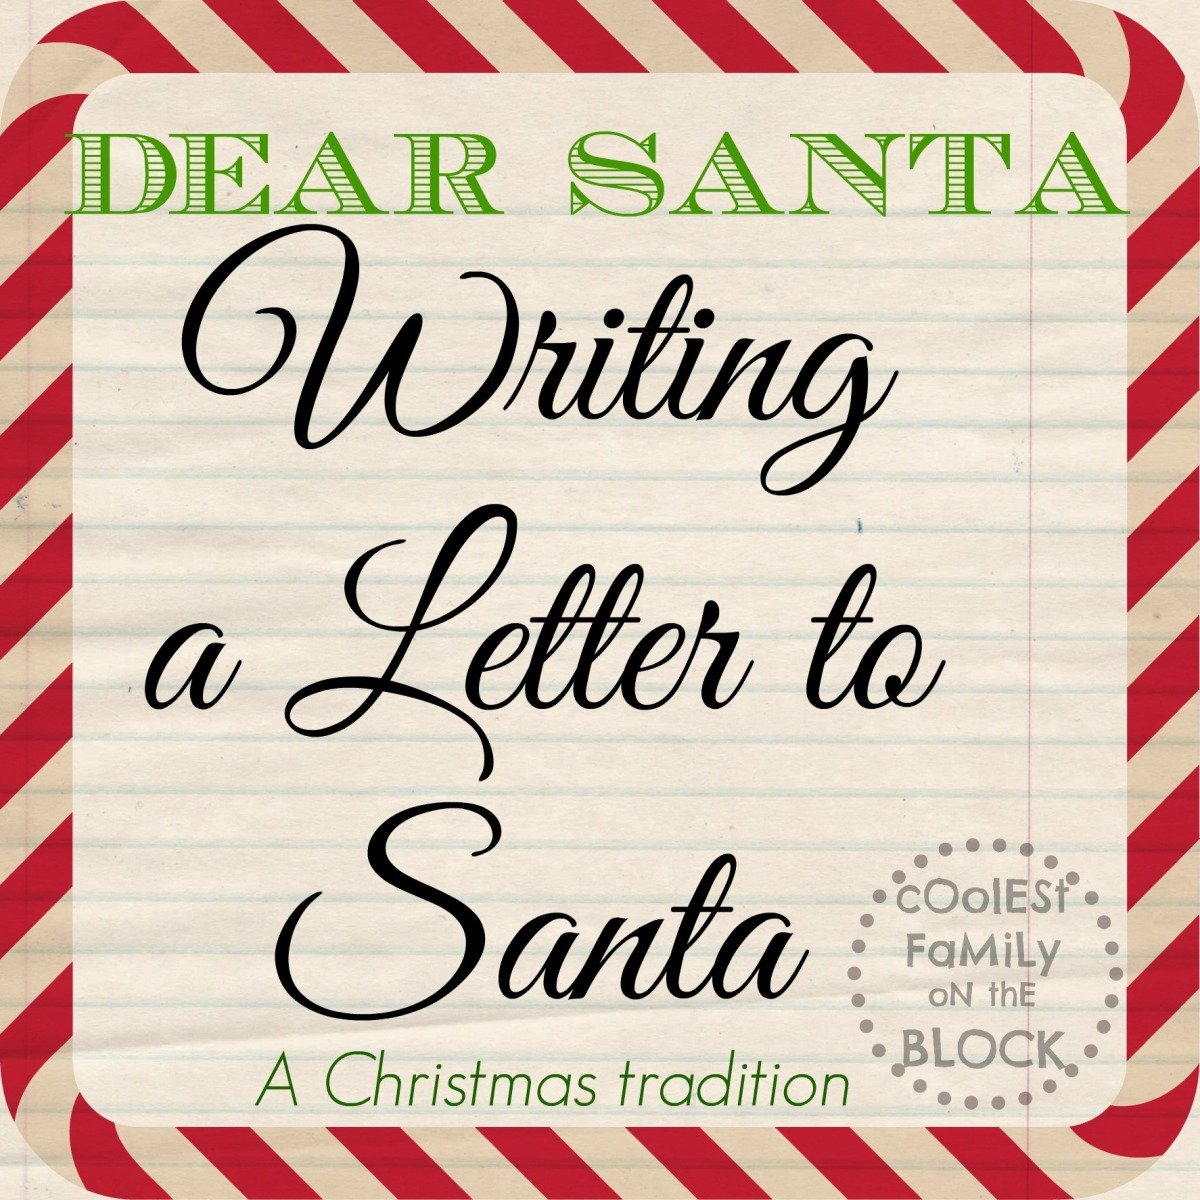 writing letters to santa As the christmas season approaches, many children enjoy sending a letter to santa claus you can help make a child's christmas more enjoyable by starting your own santa letter writing business.